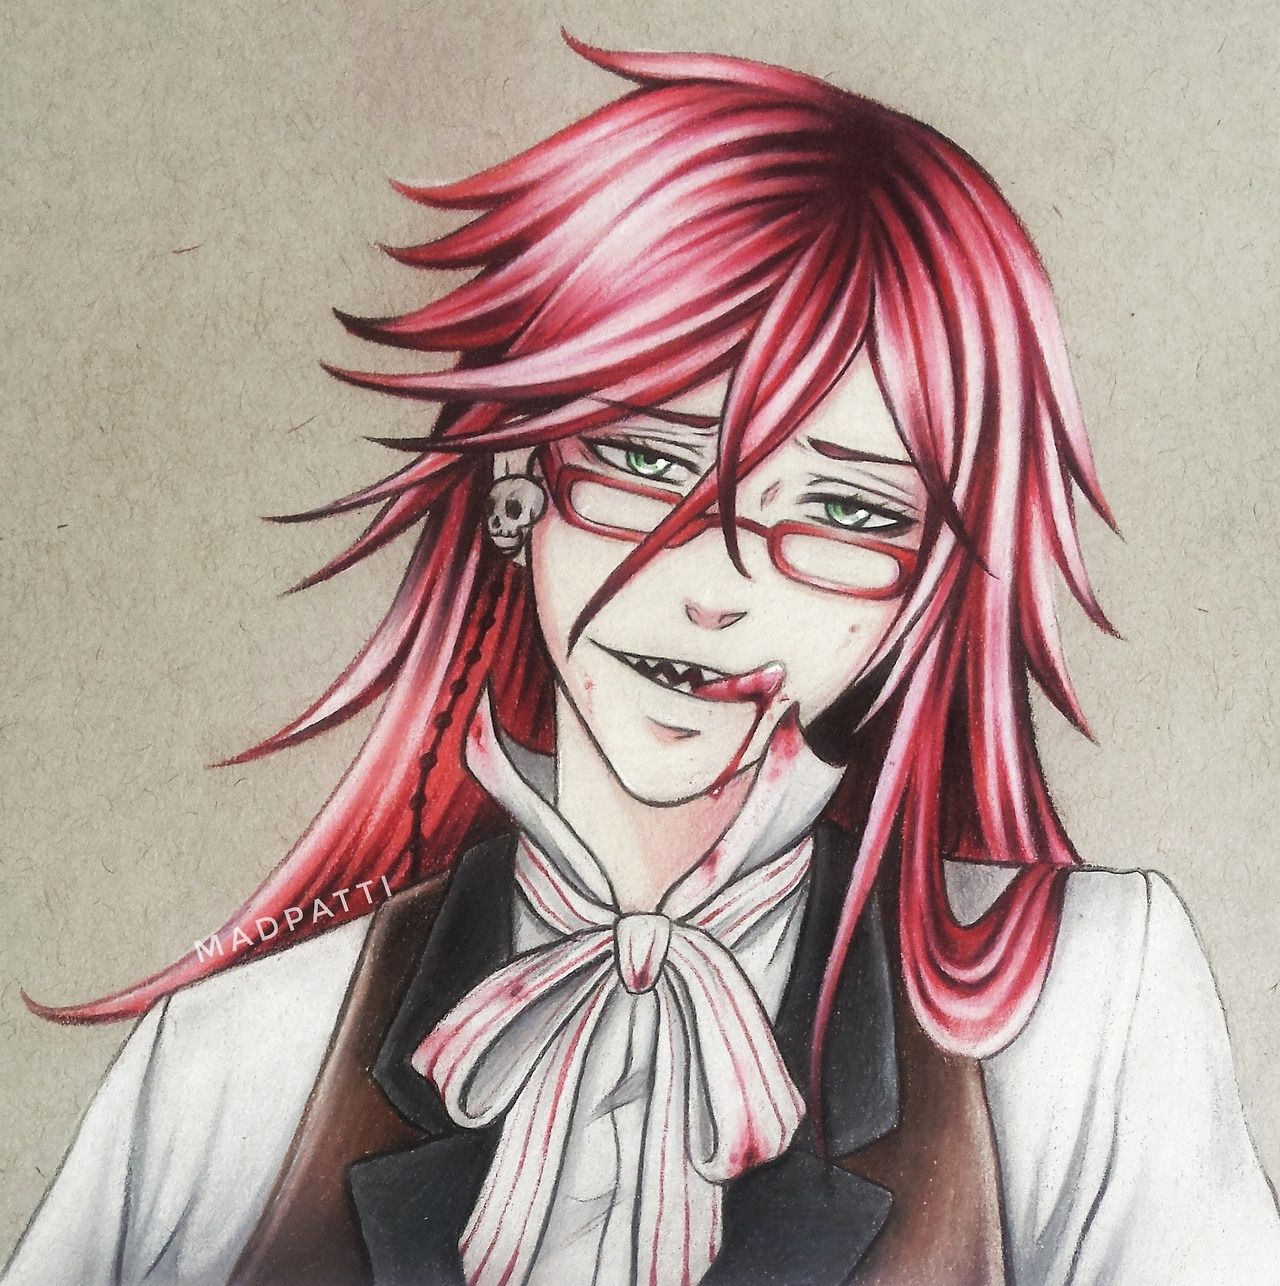 Pin on Black Butler [Mostly Grell]